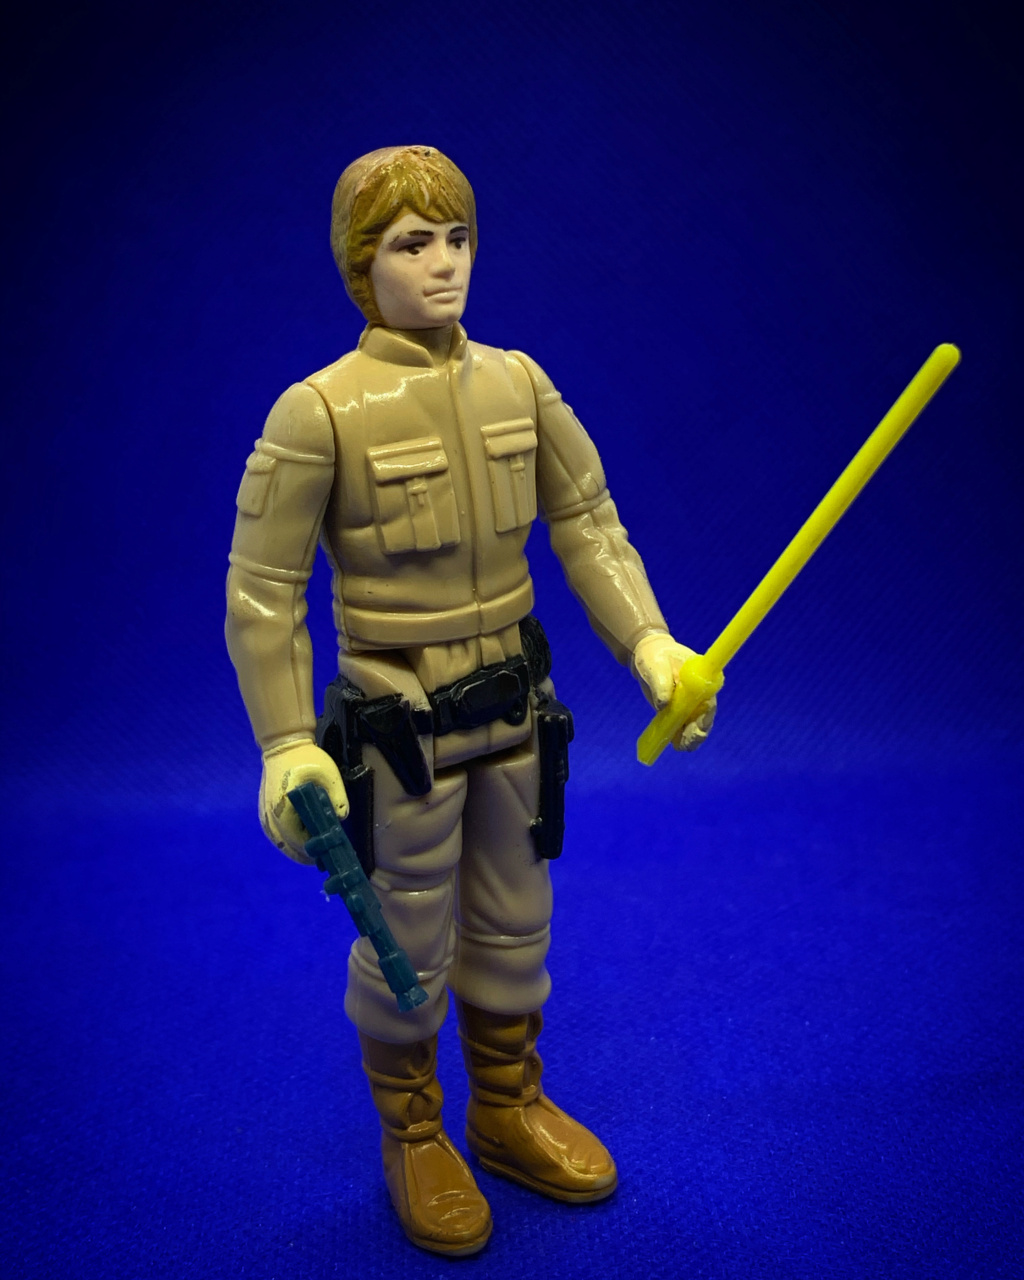 Luke Skywalker - Bespin Fatigues - Variation Profile 3e8a4f10